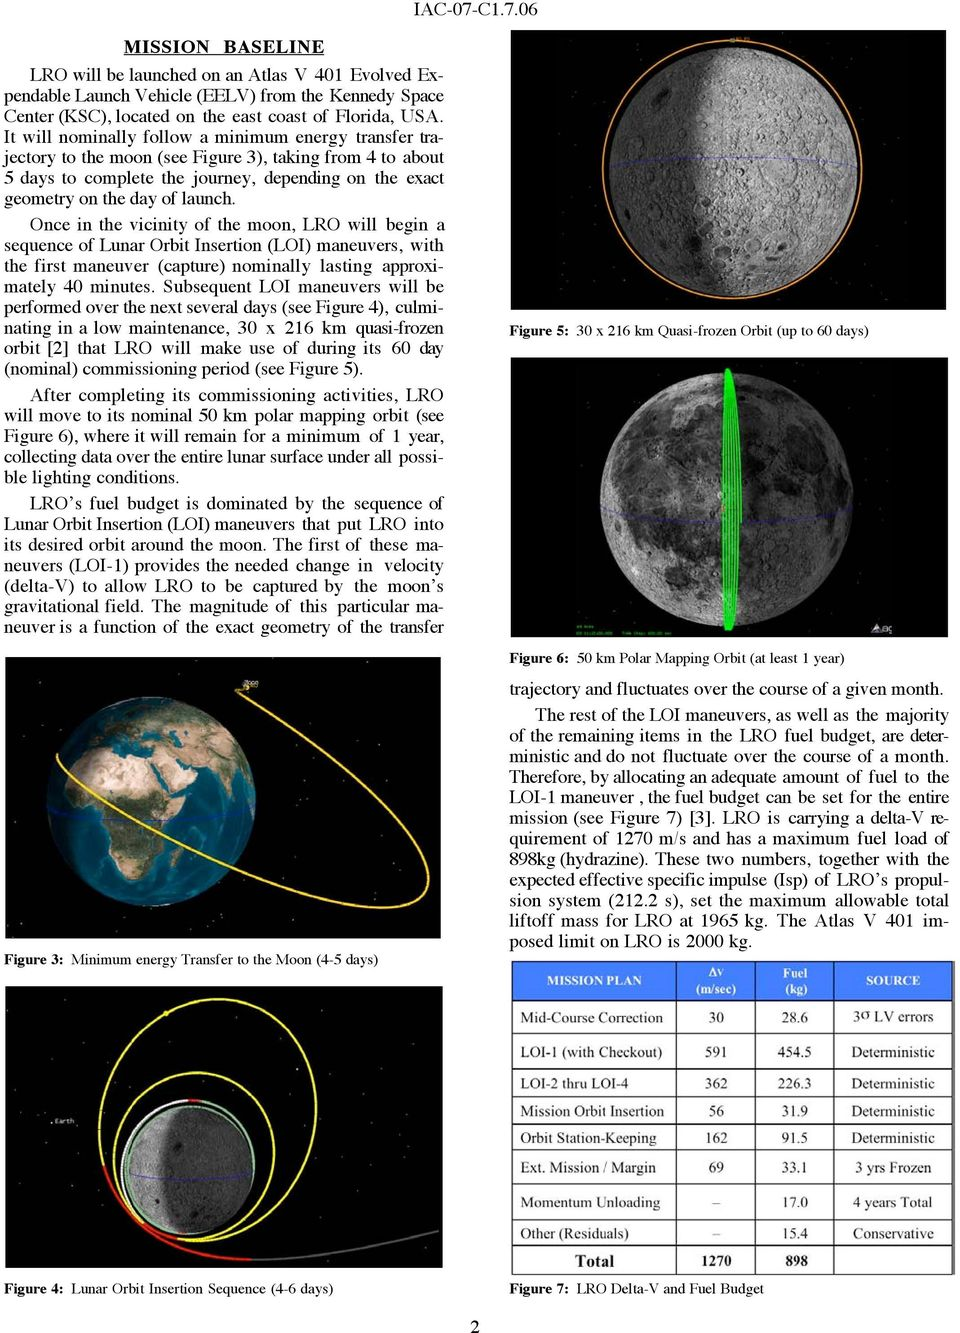 Once in the vicinity of the moon, LRO will begin a sequence of Lunar Orbit Insertion (LOI) maneuvers, with the first maneuver (capture) nominally lasting approximately 40 minutes.